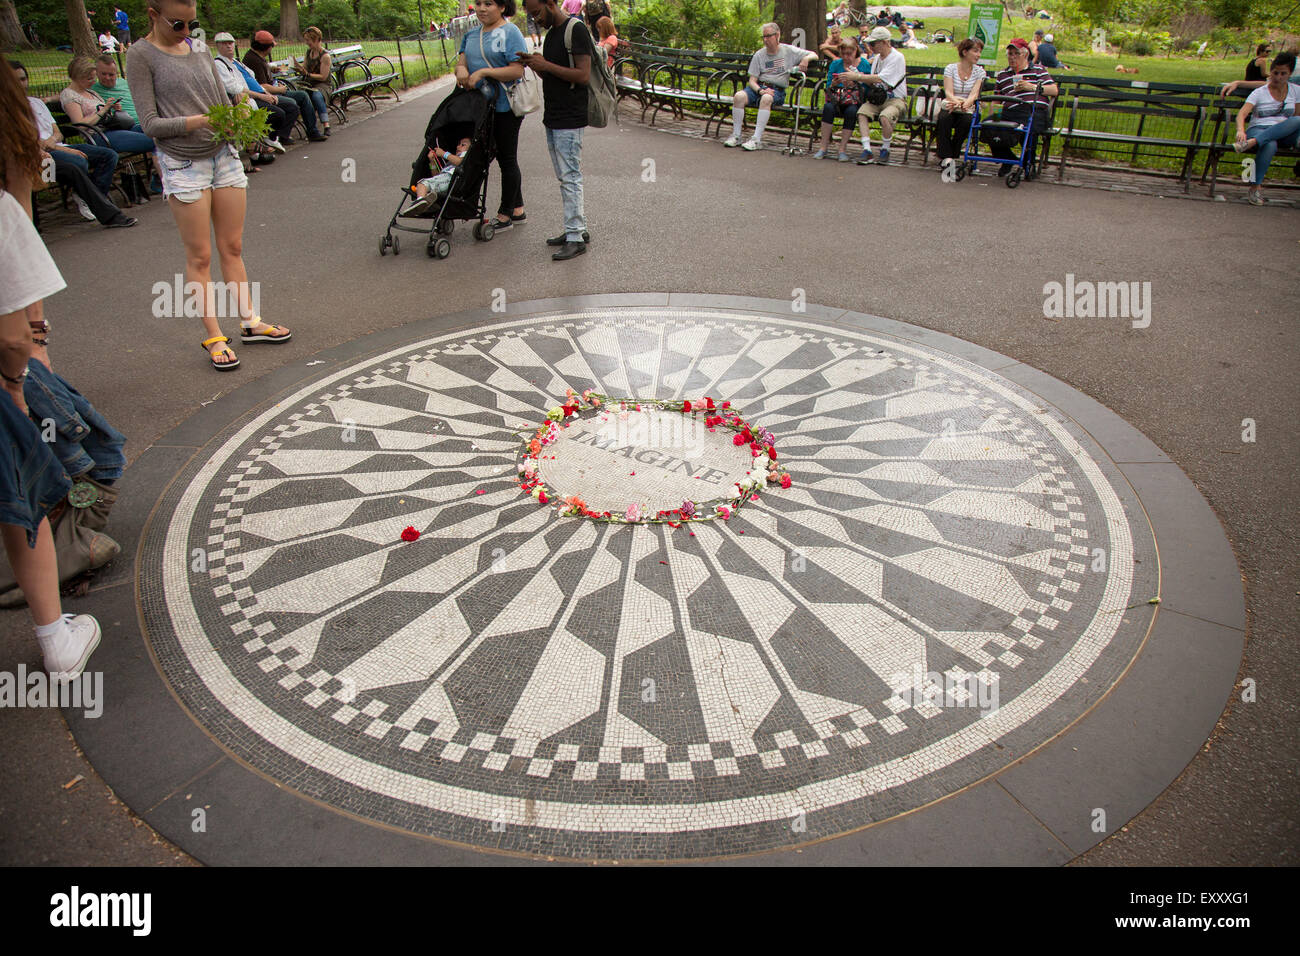 Nueva York - Mayo 25, 2015: la gente se reúne en Strawberry Fields en Central Park, New York. Campos de Fresas es Foto de stock